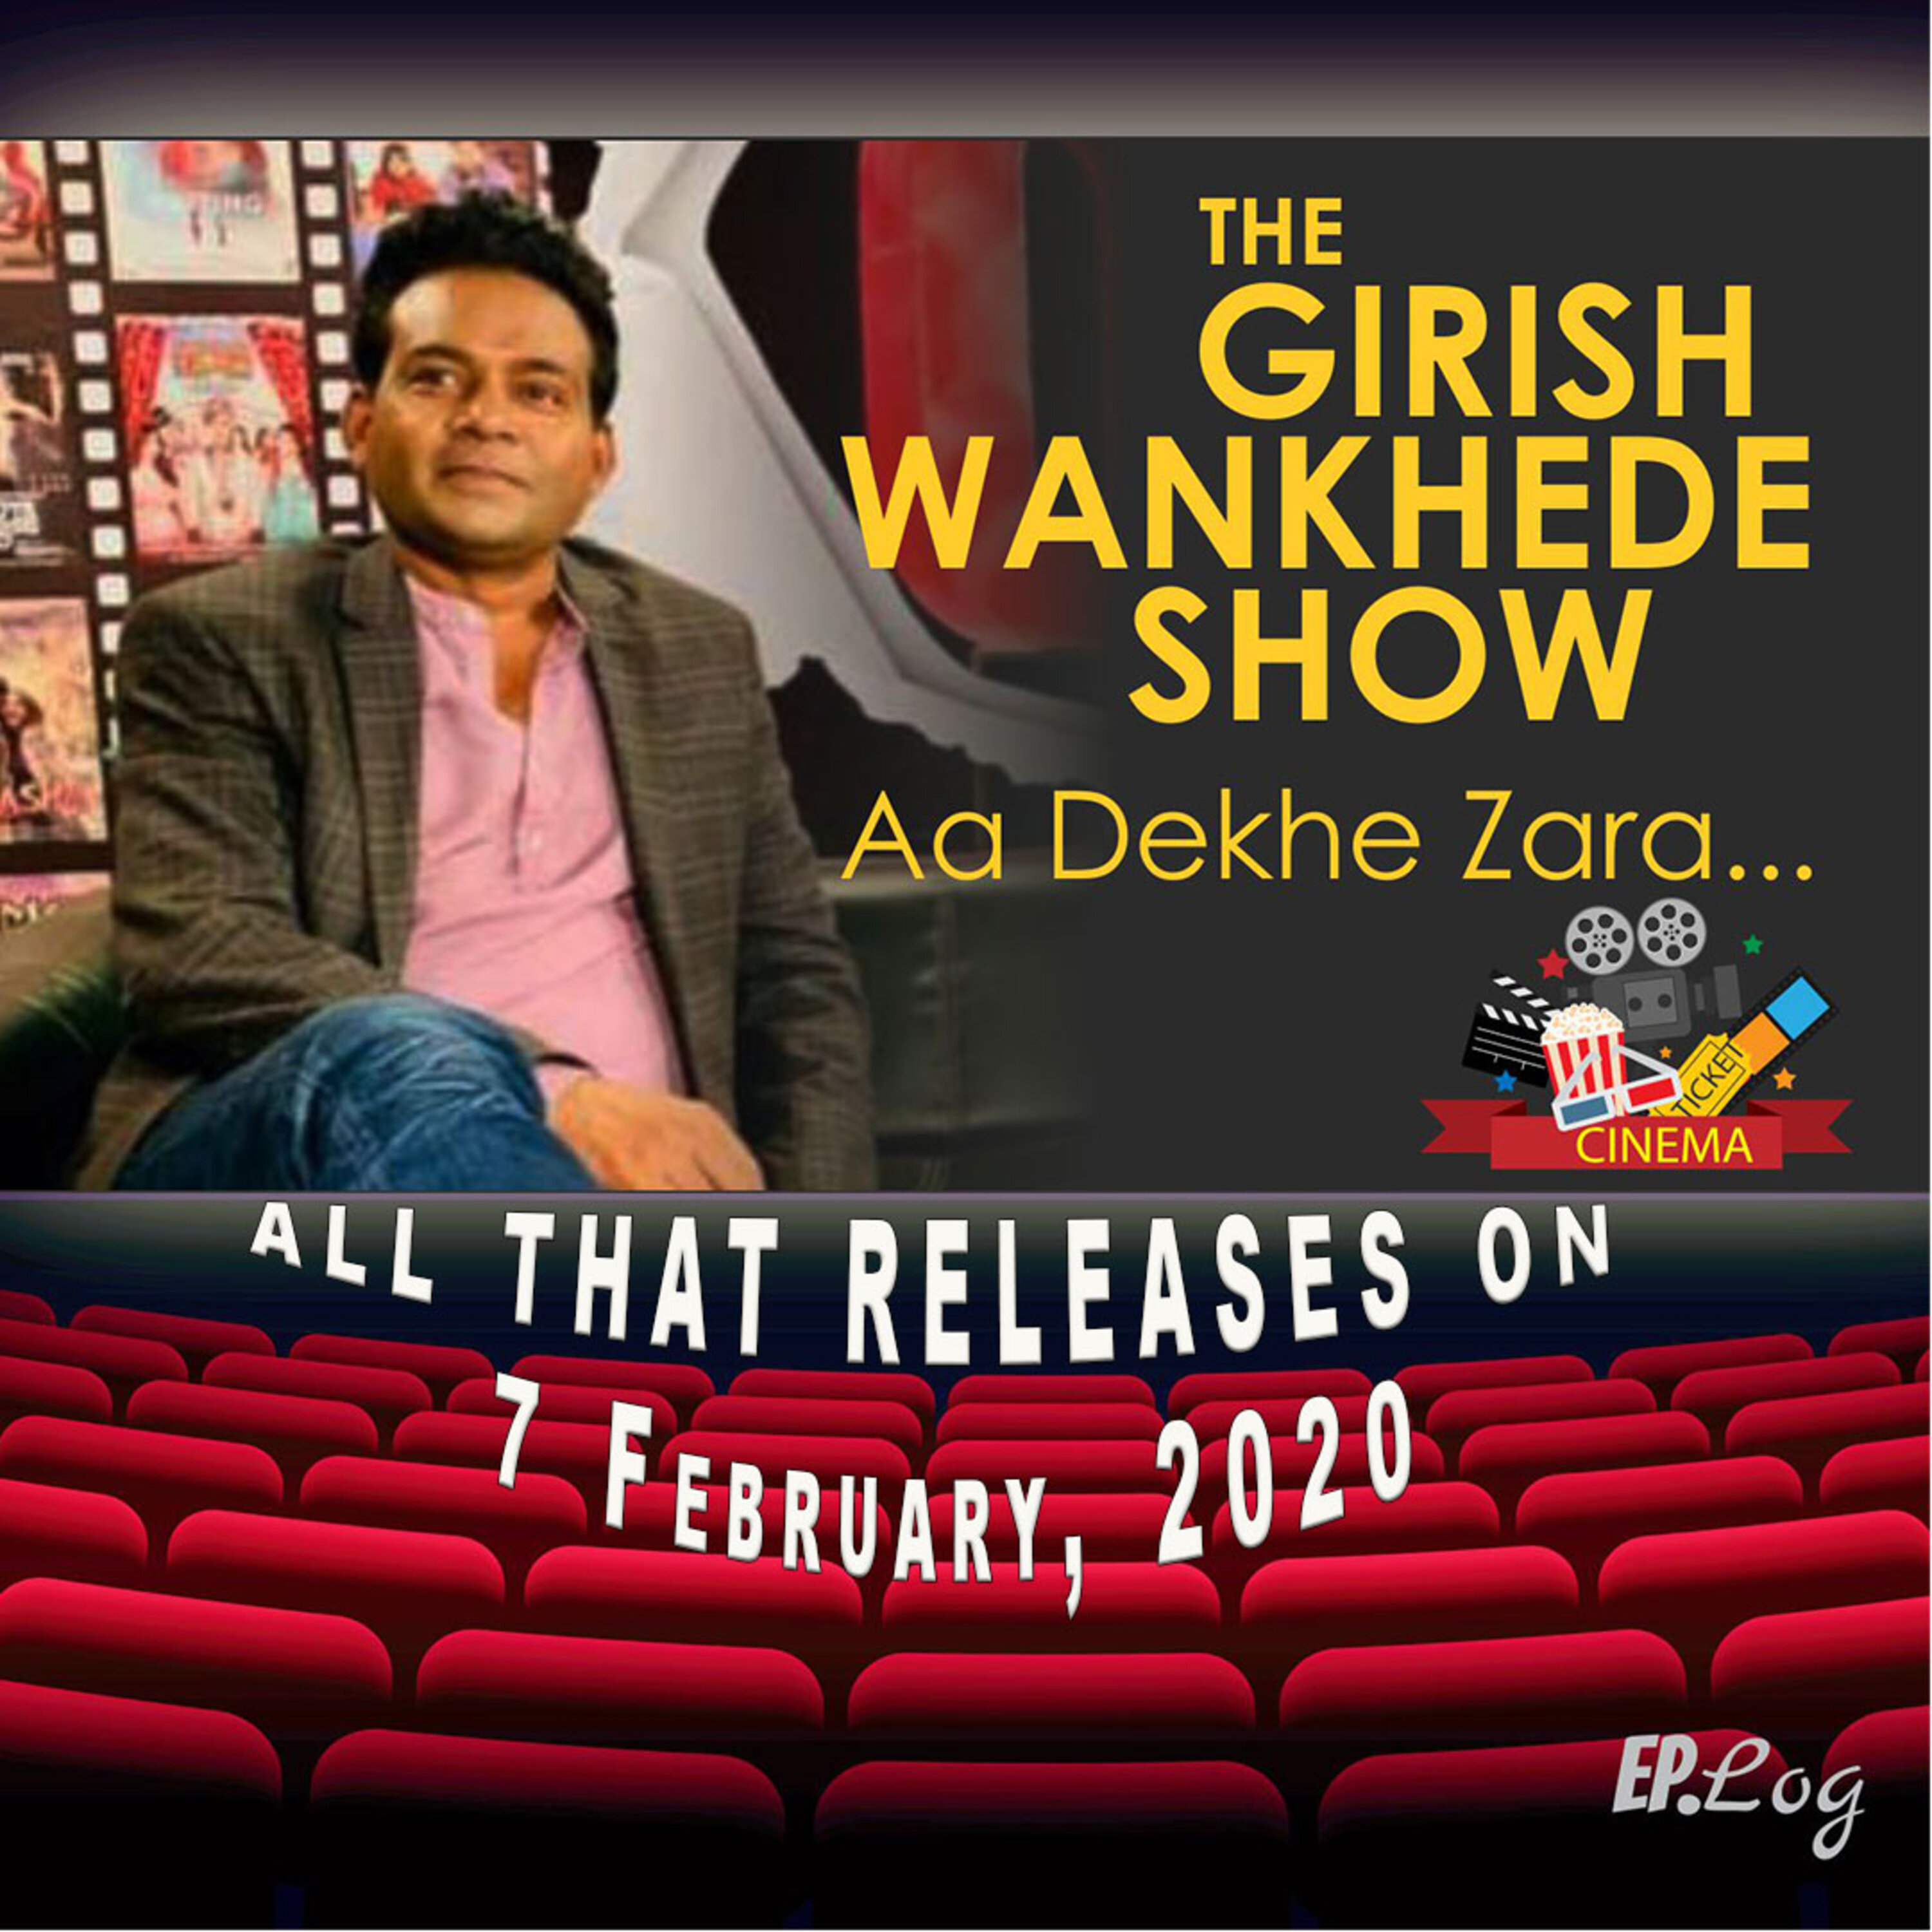 All That Releases on 7th February 2020 & Analysis